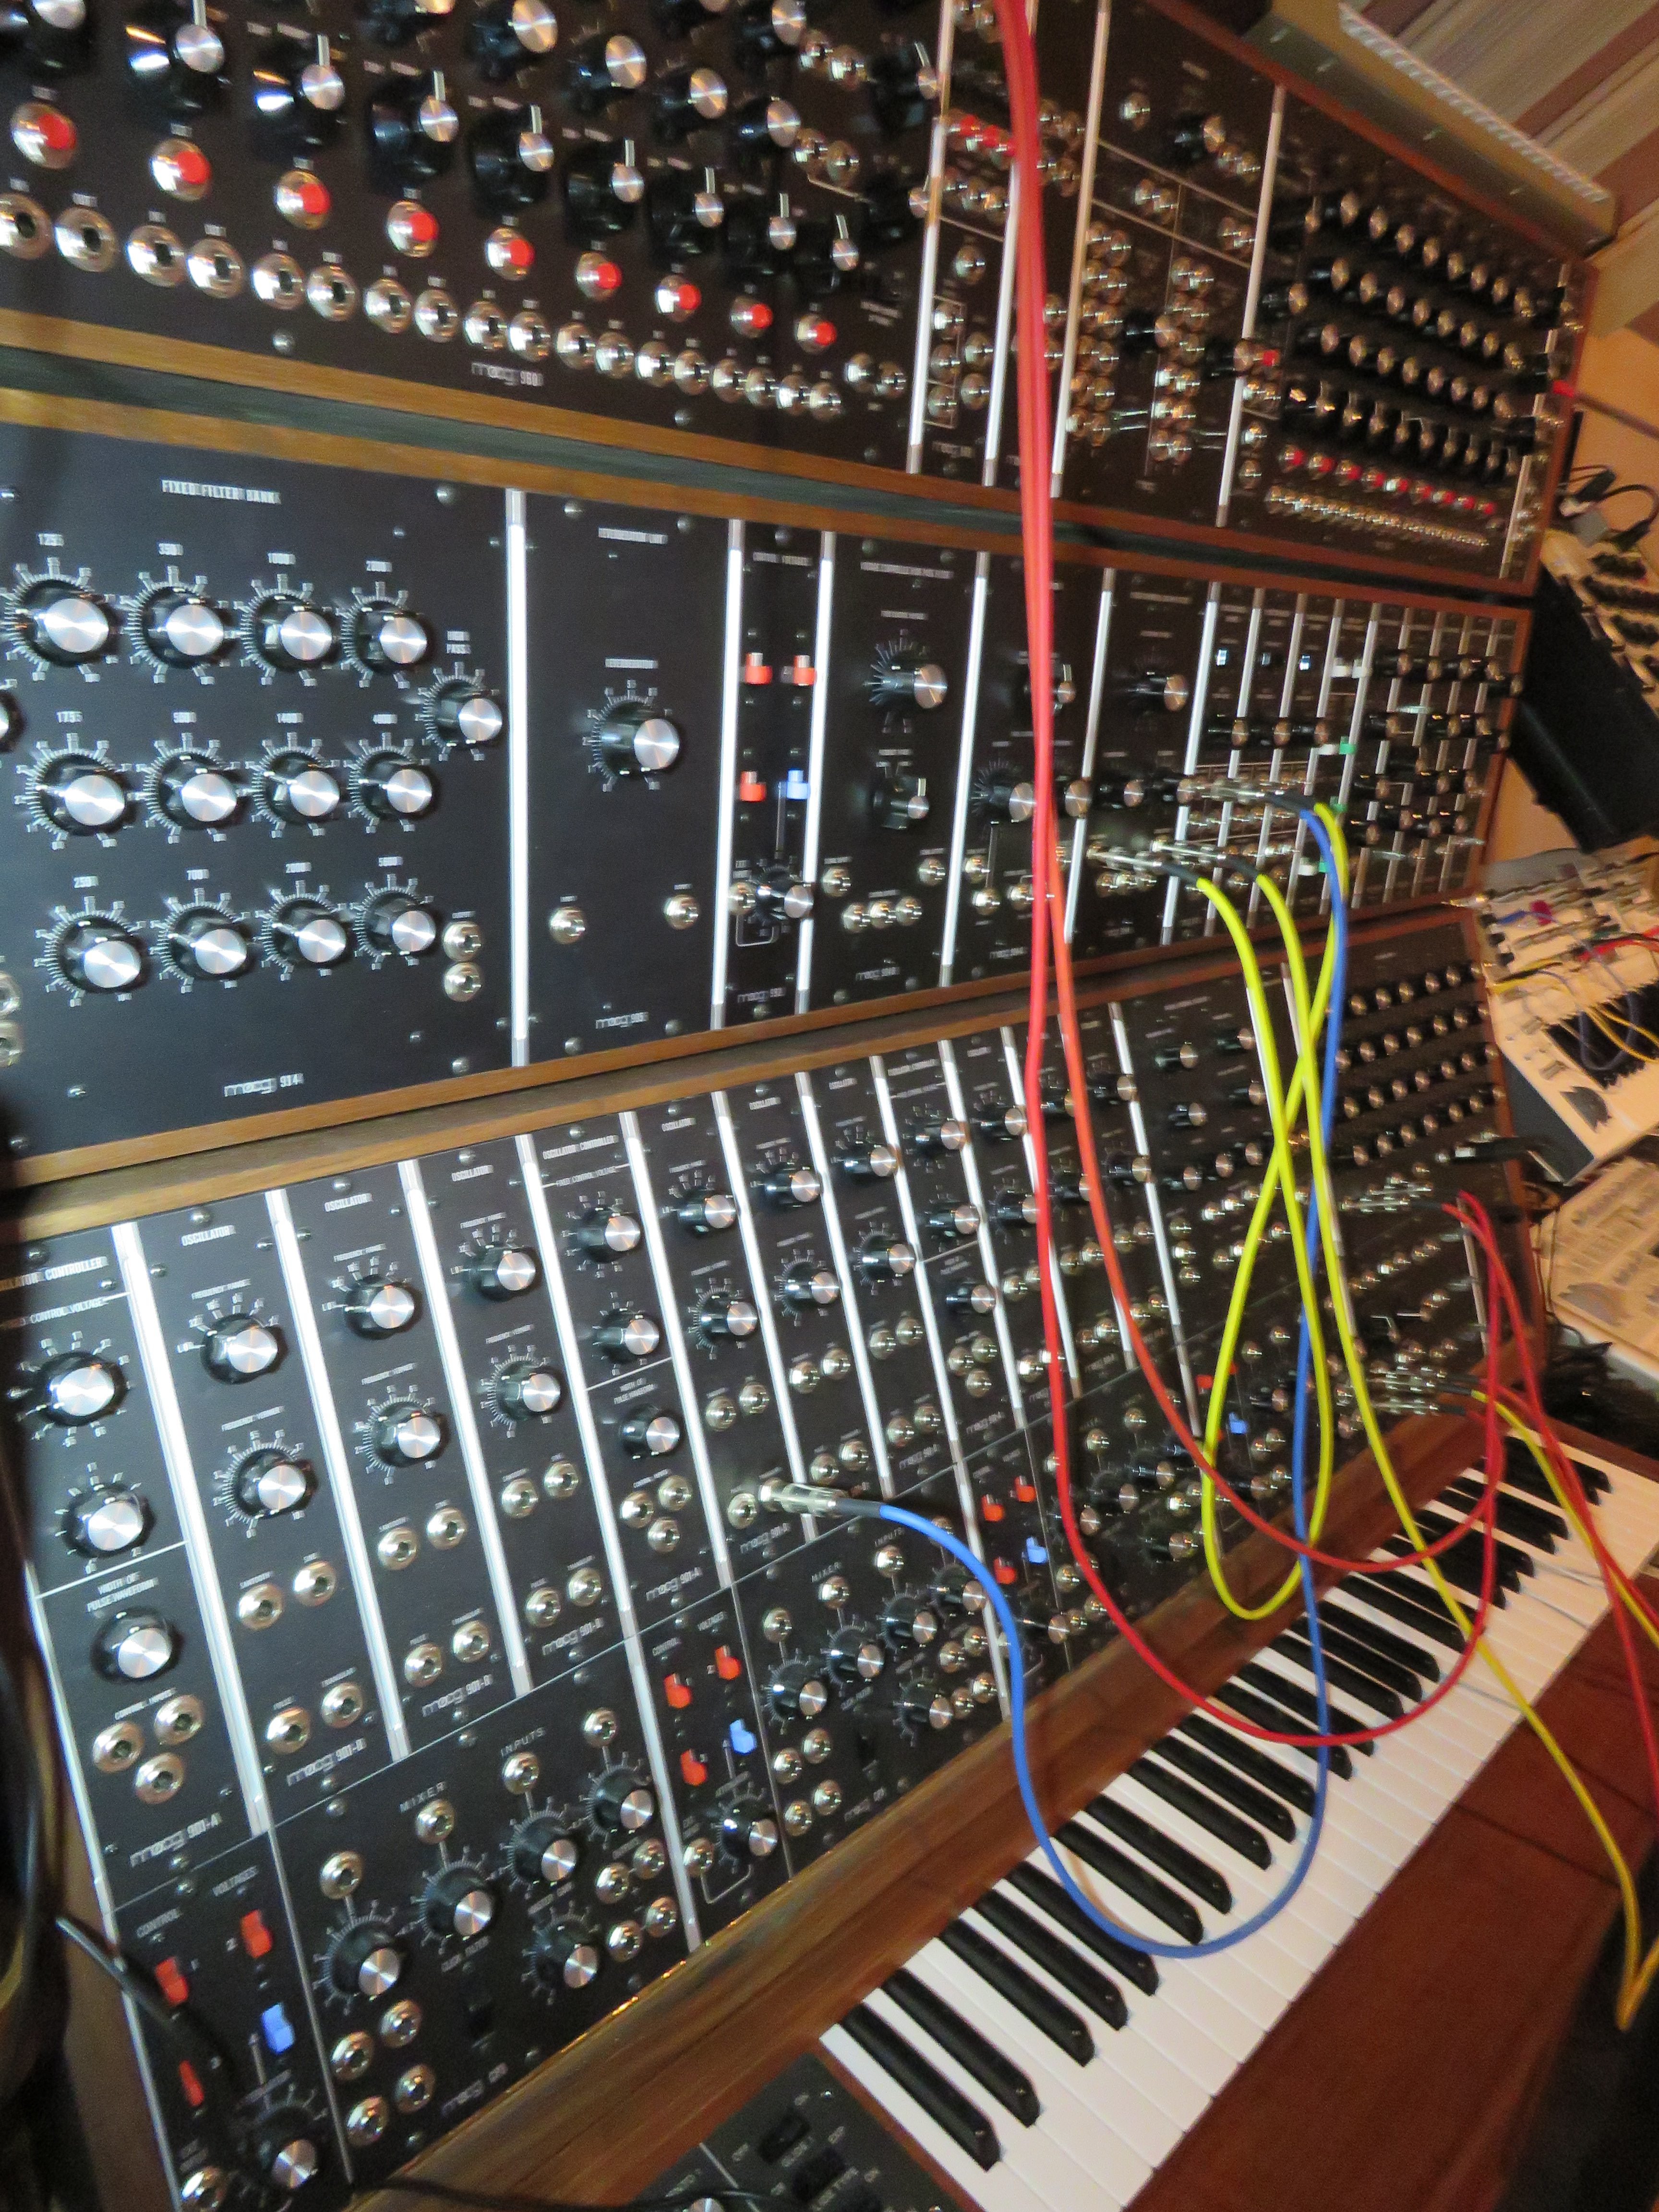 Photo Galleries Jeff Russo Recording Studio Wiring In Musicbox Control Room